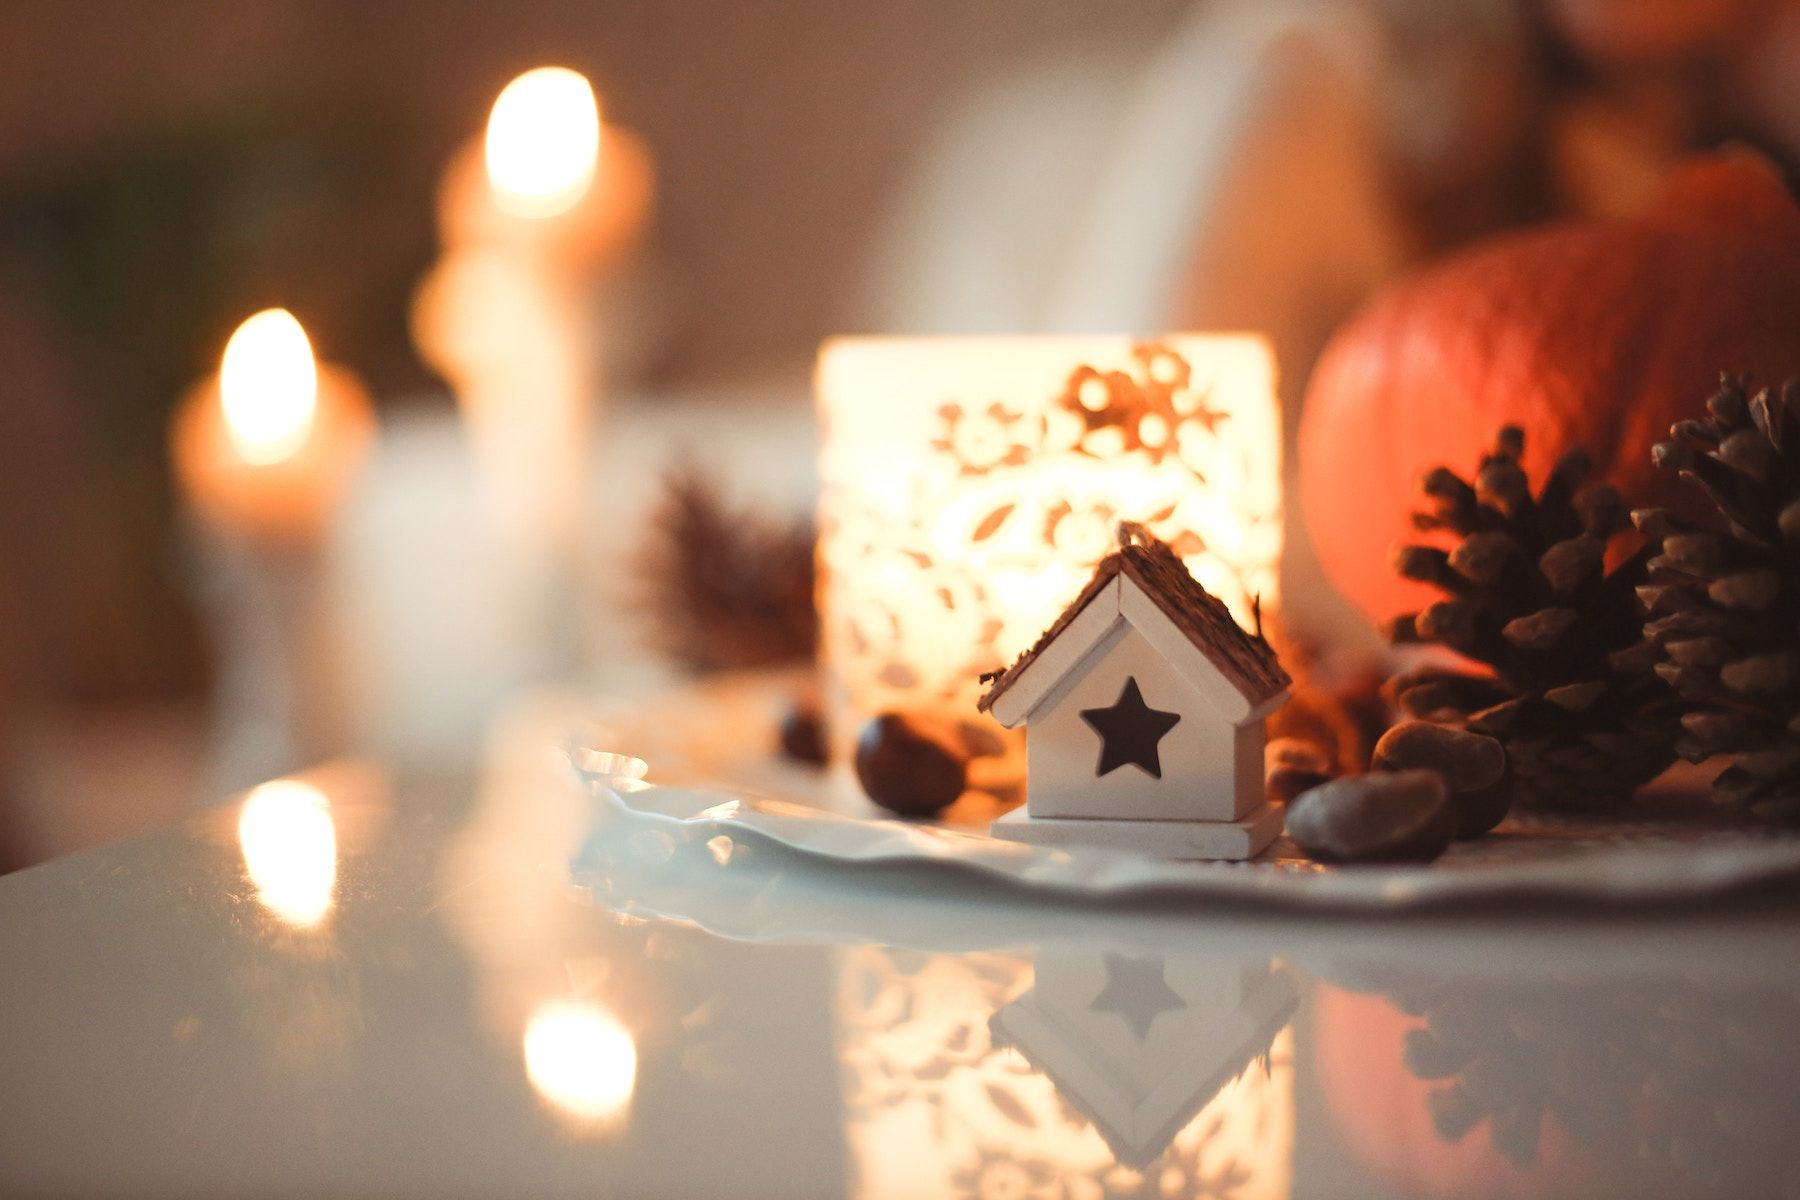 Guest Blog: 16 Community ideas to ring in the holidays